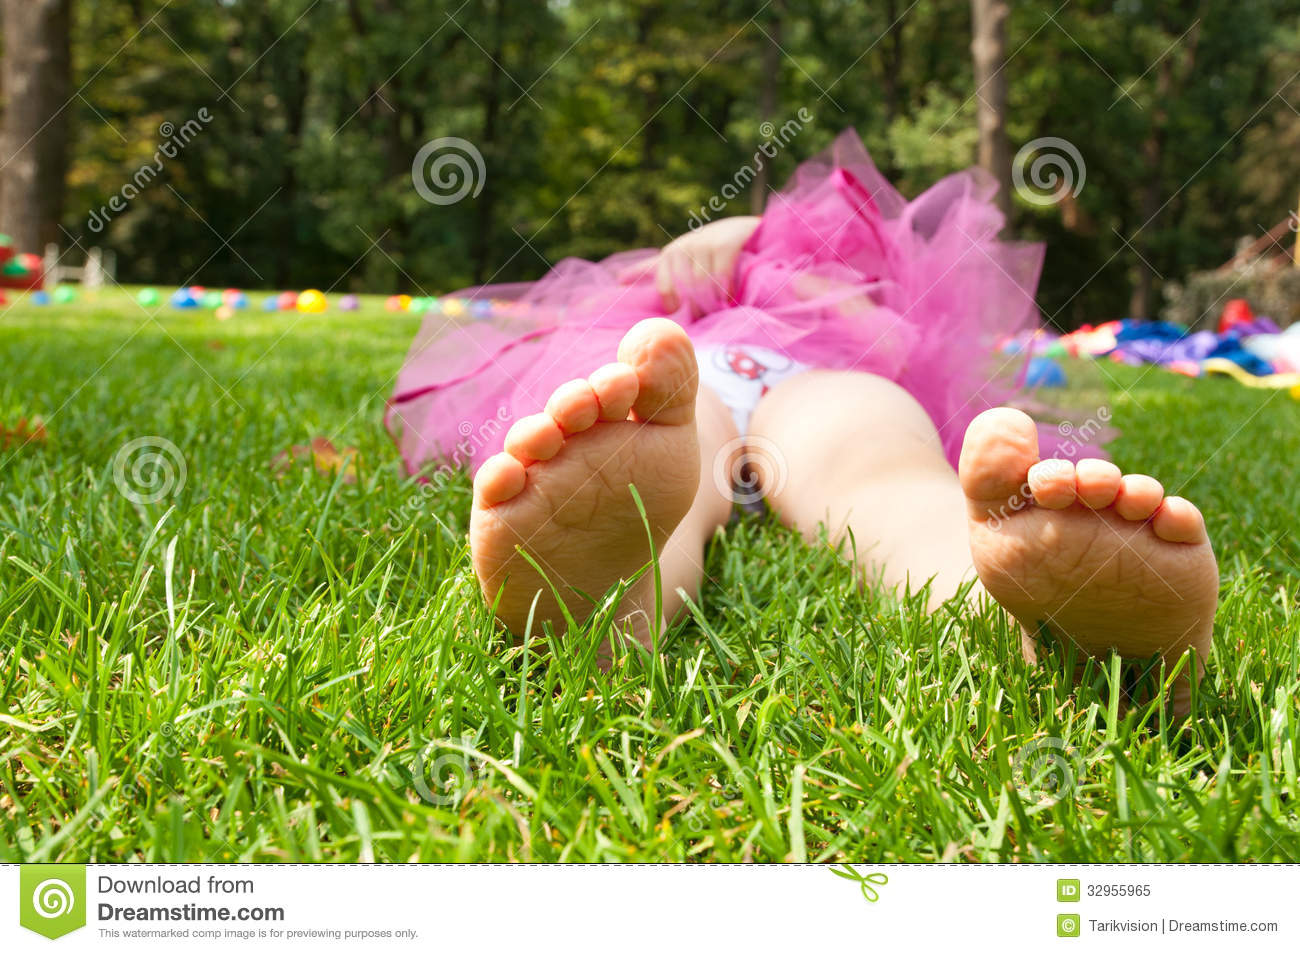 Happy Little Girl Lying On Green Grass Royalty Free Stock Photo ...: dreamstime.com/royalty-free-stock-photo-happy-little-girl-lying...